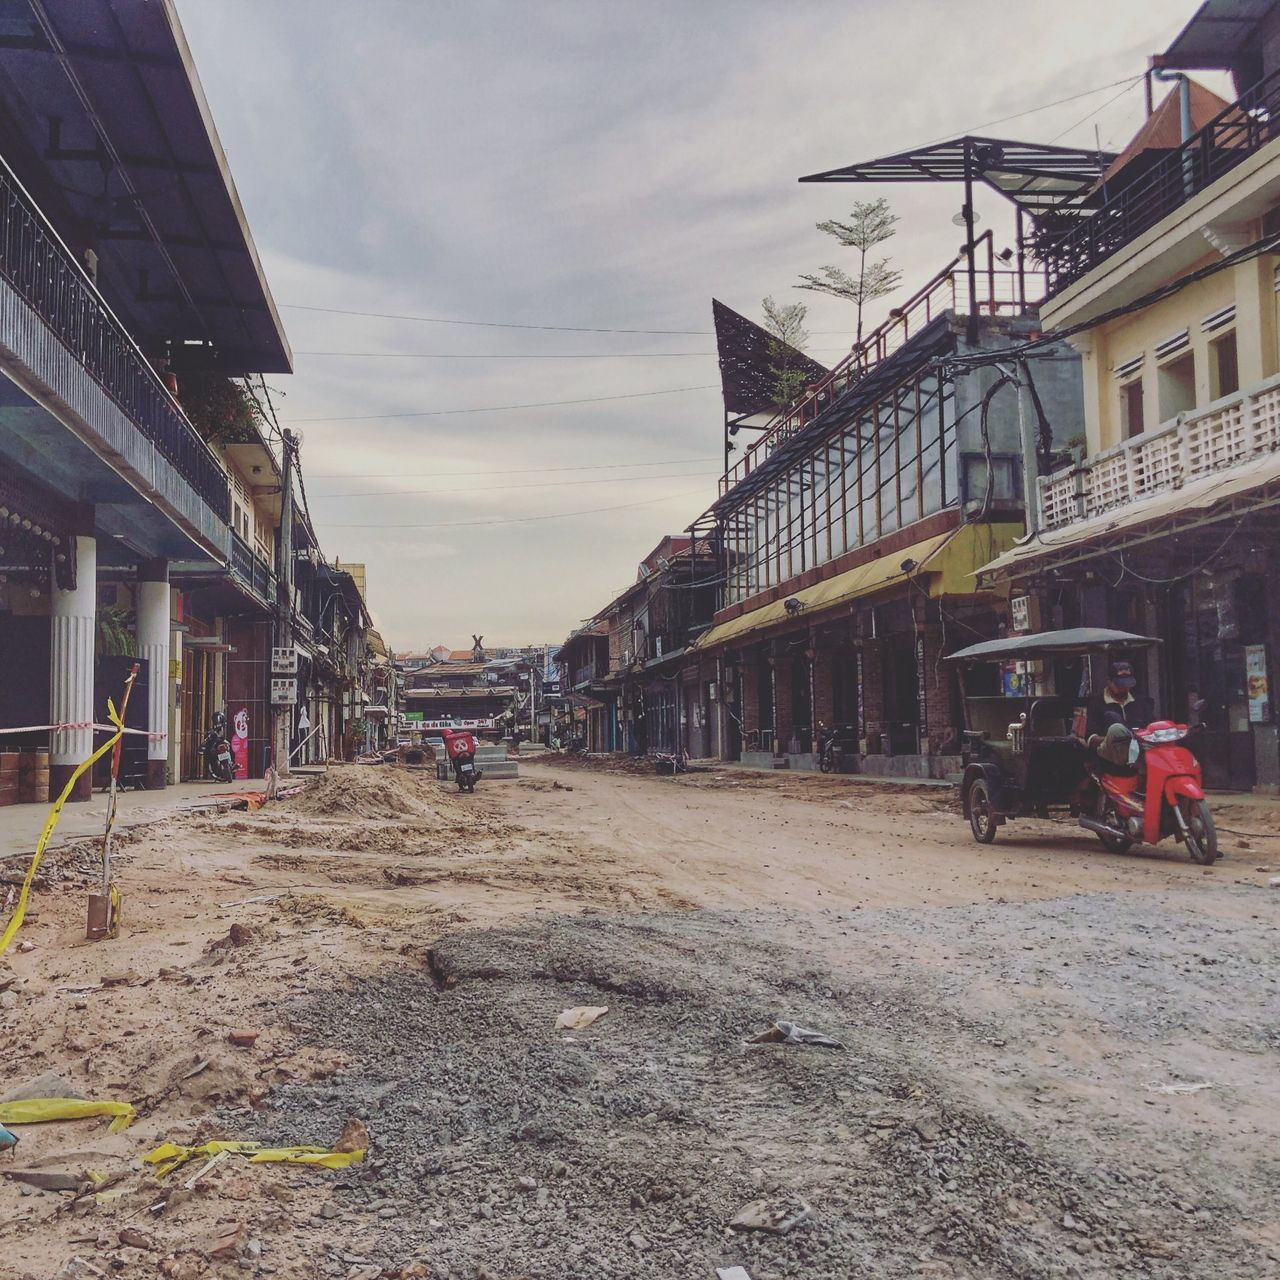 Home to so many nightclubs, it's currently a ghost town in Siem Reap